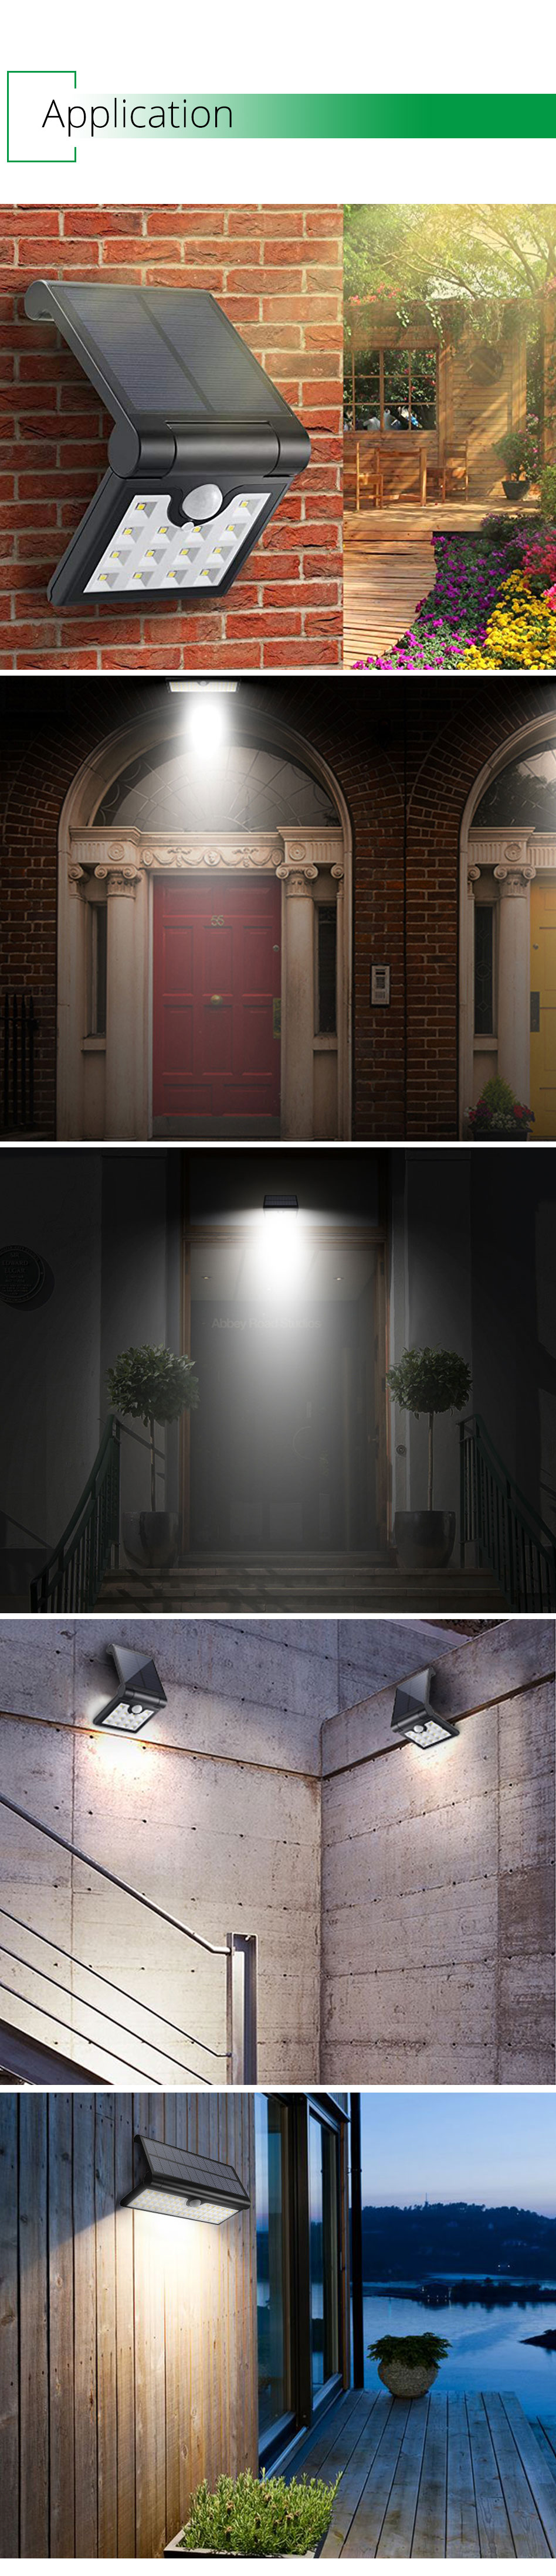 IP65 Outdoor Solar Led Lighting Home Garden Street Courtyard Solar Wall Lights Motion Sensor Lamp Modern Lithium Battery (13)